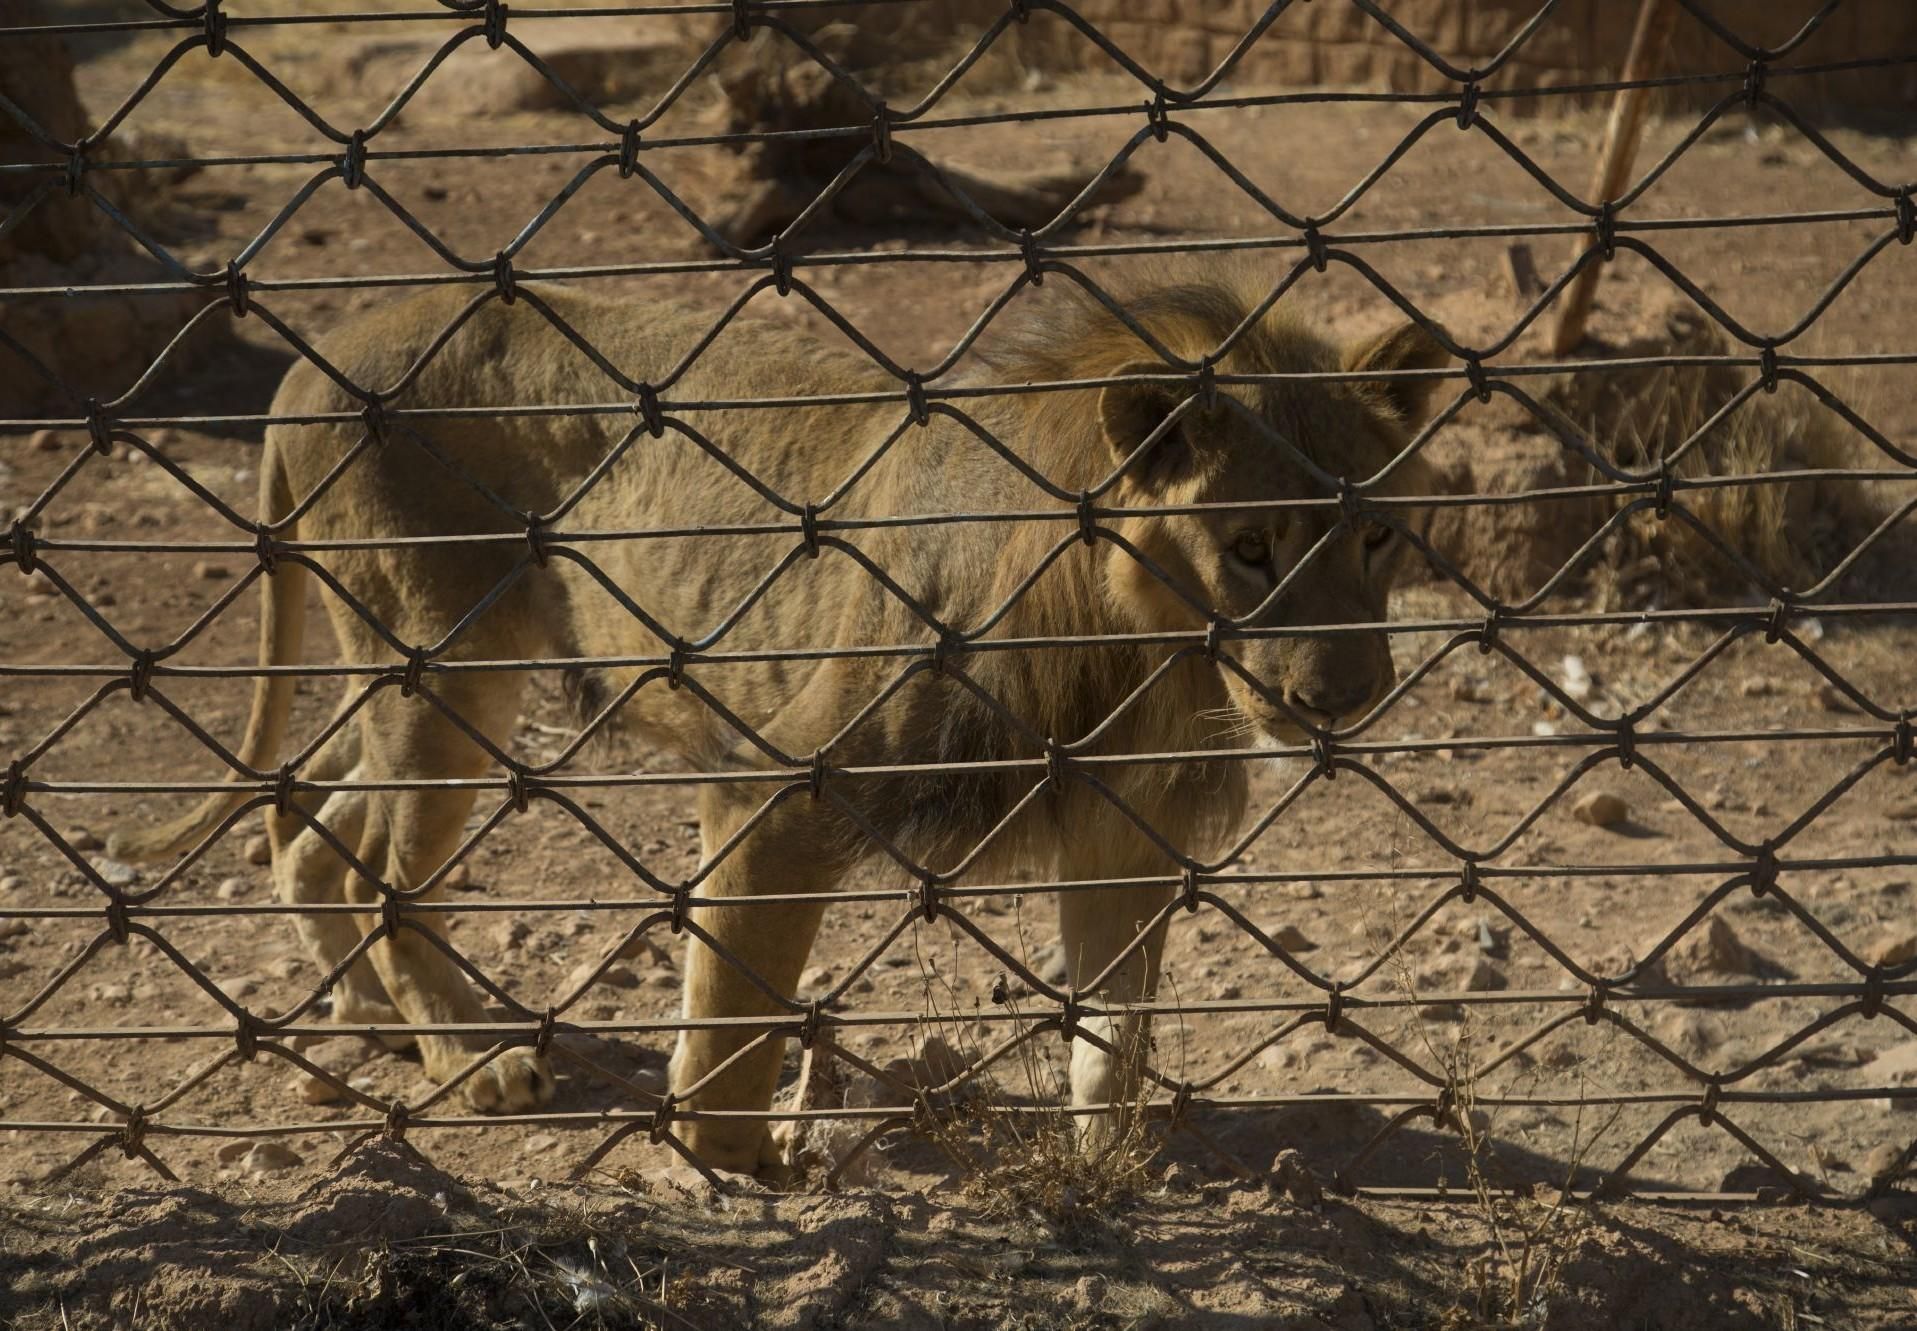 Lion in a zoo near the Syrian city of Aleppo